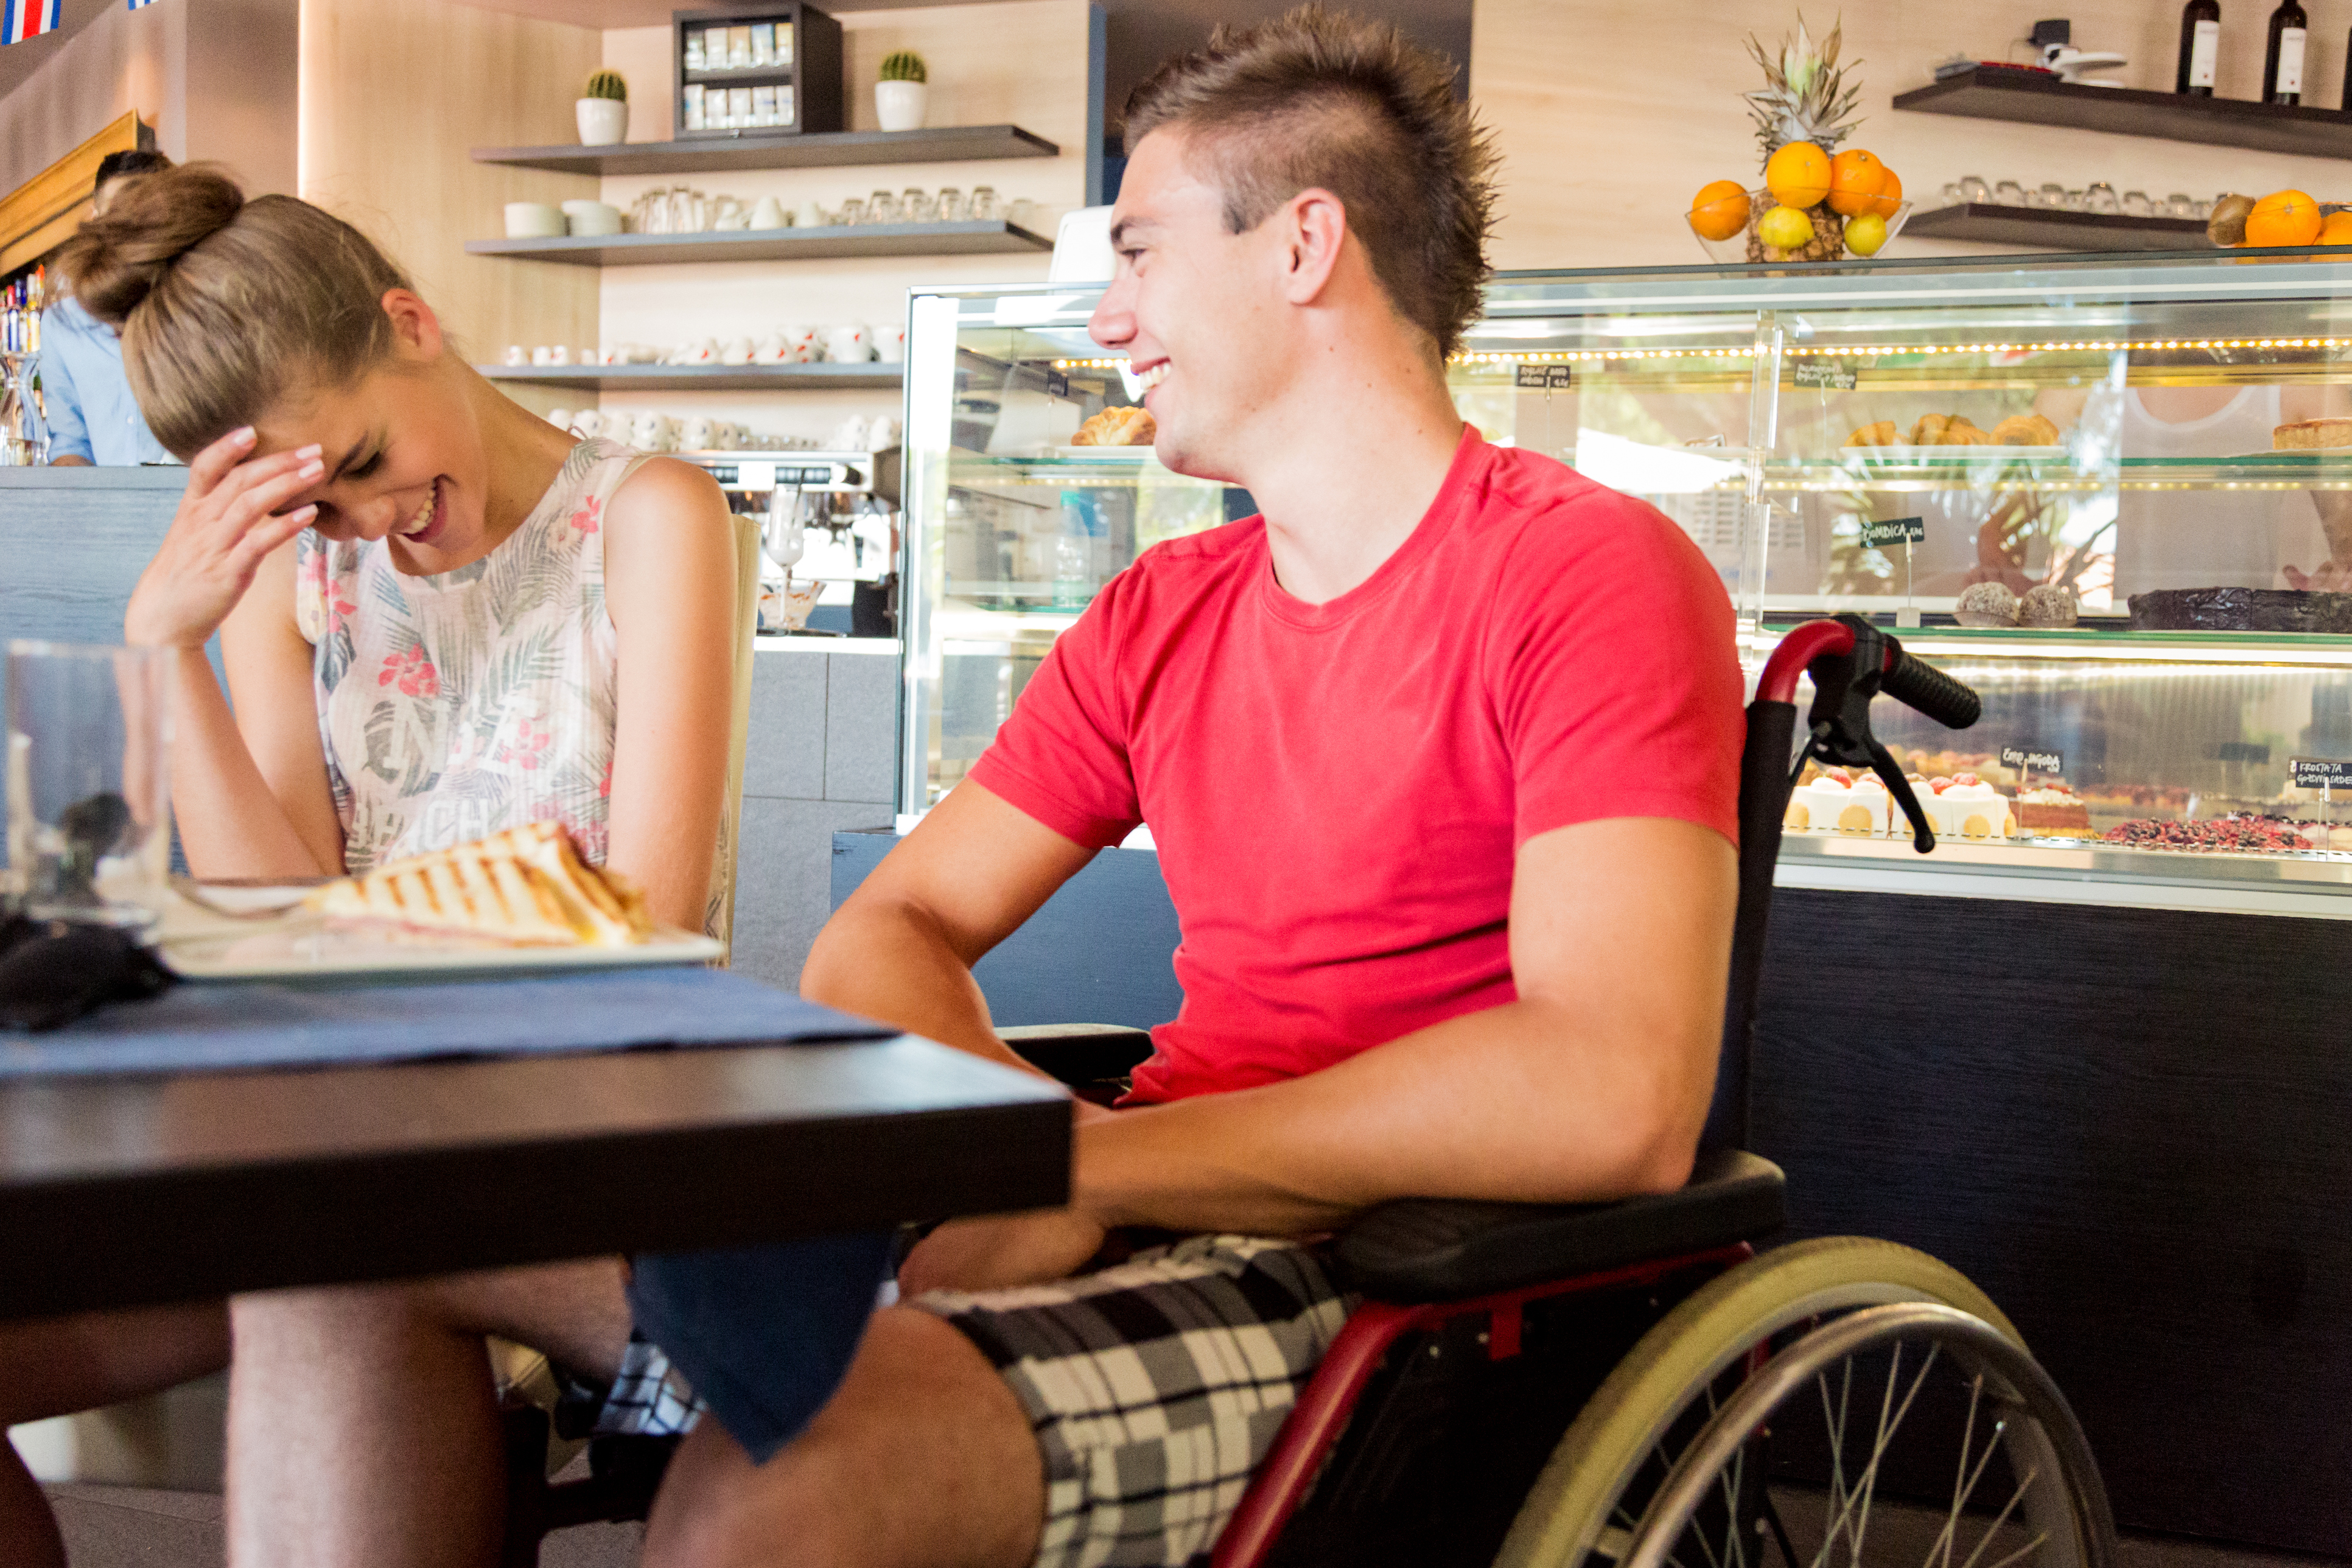 Online Dating: On A First Date With Someone, How Do You Handle Telling Them About A Disability You Have That They're Going To Notice Anyway?